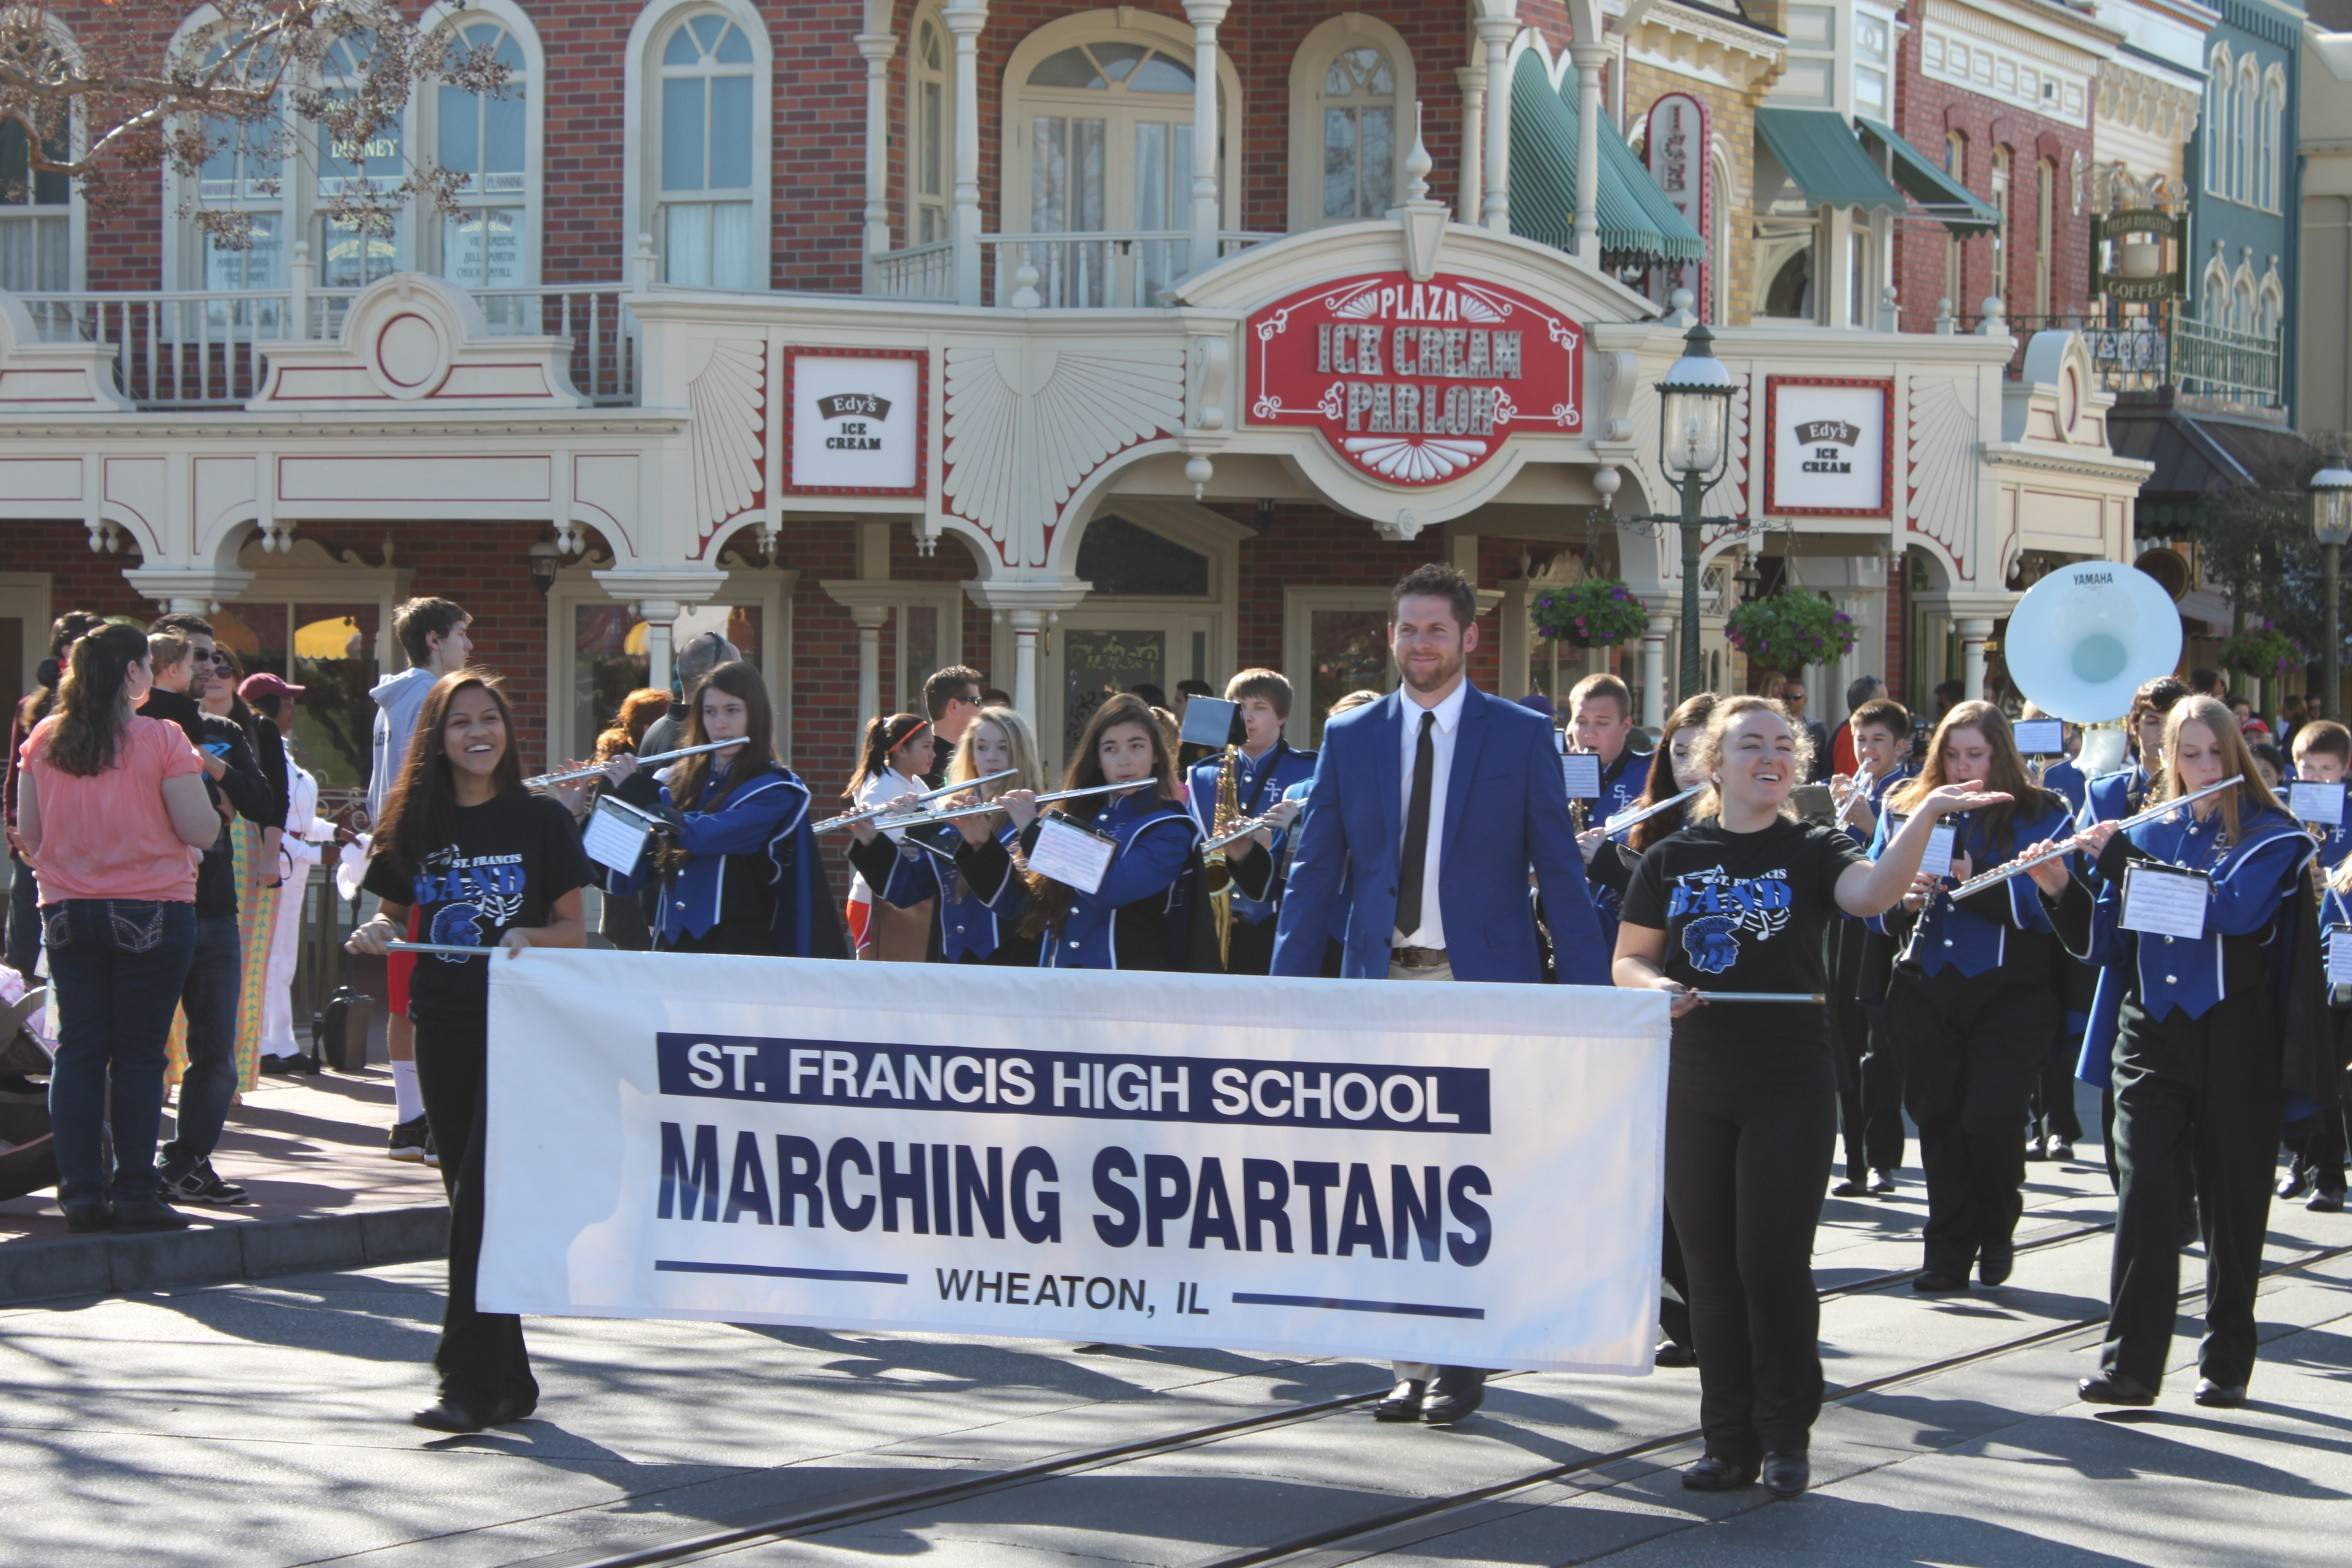 The St. Francis High School Marching Band marched down Main Street U.S.A. in the Magic Kingdom.